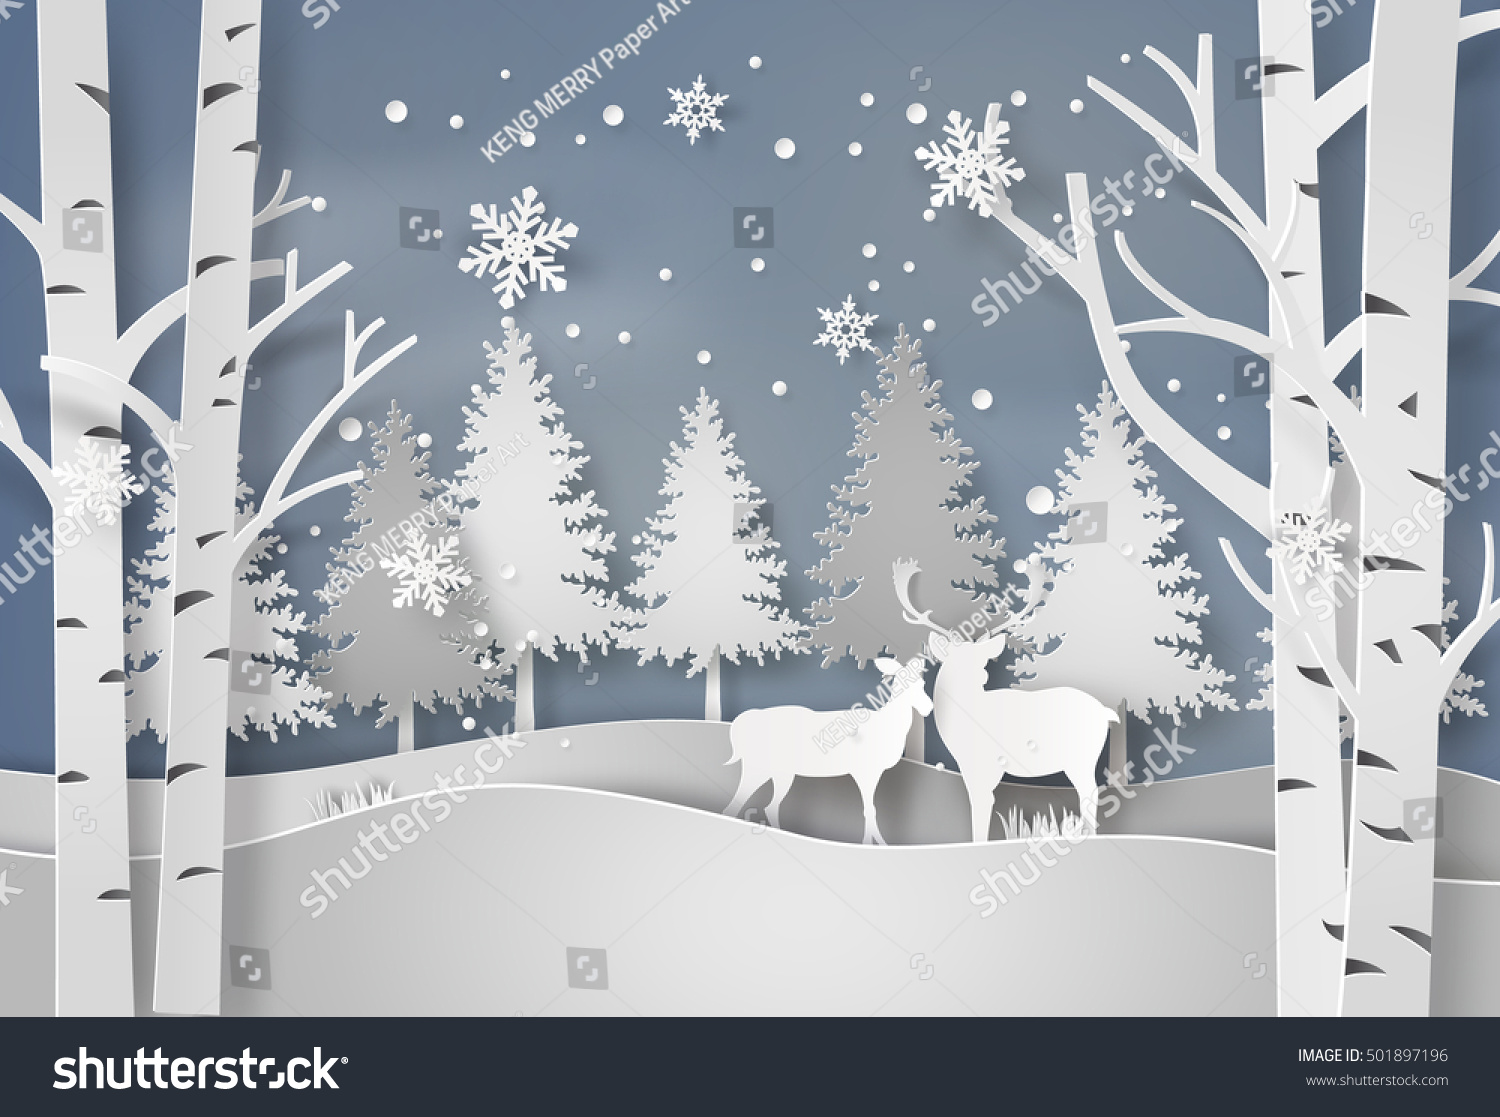 Deer in forest with snow in christmas and winter season,paper art style.